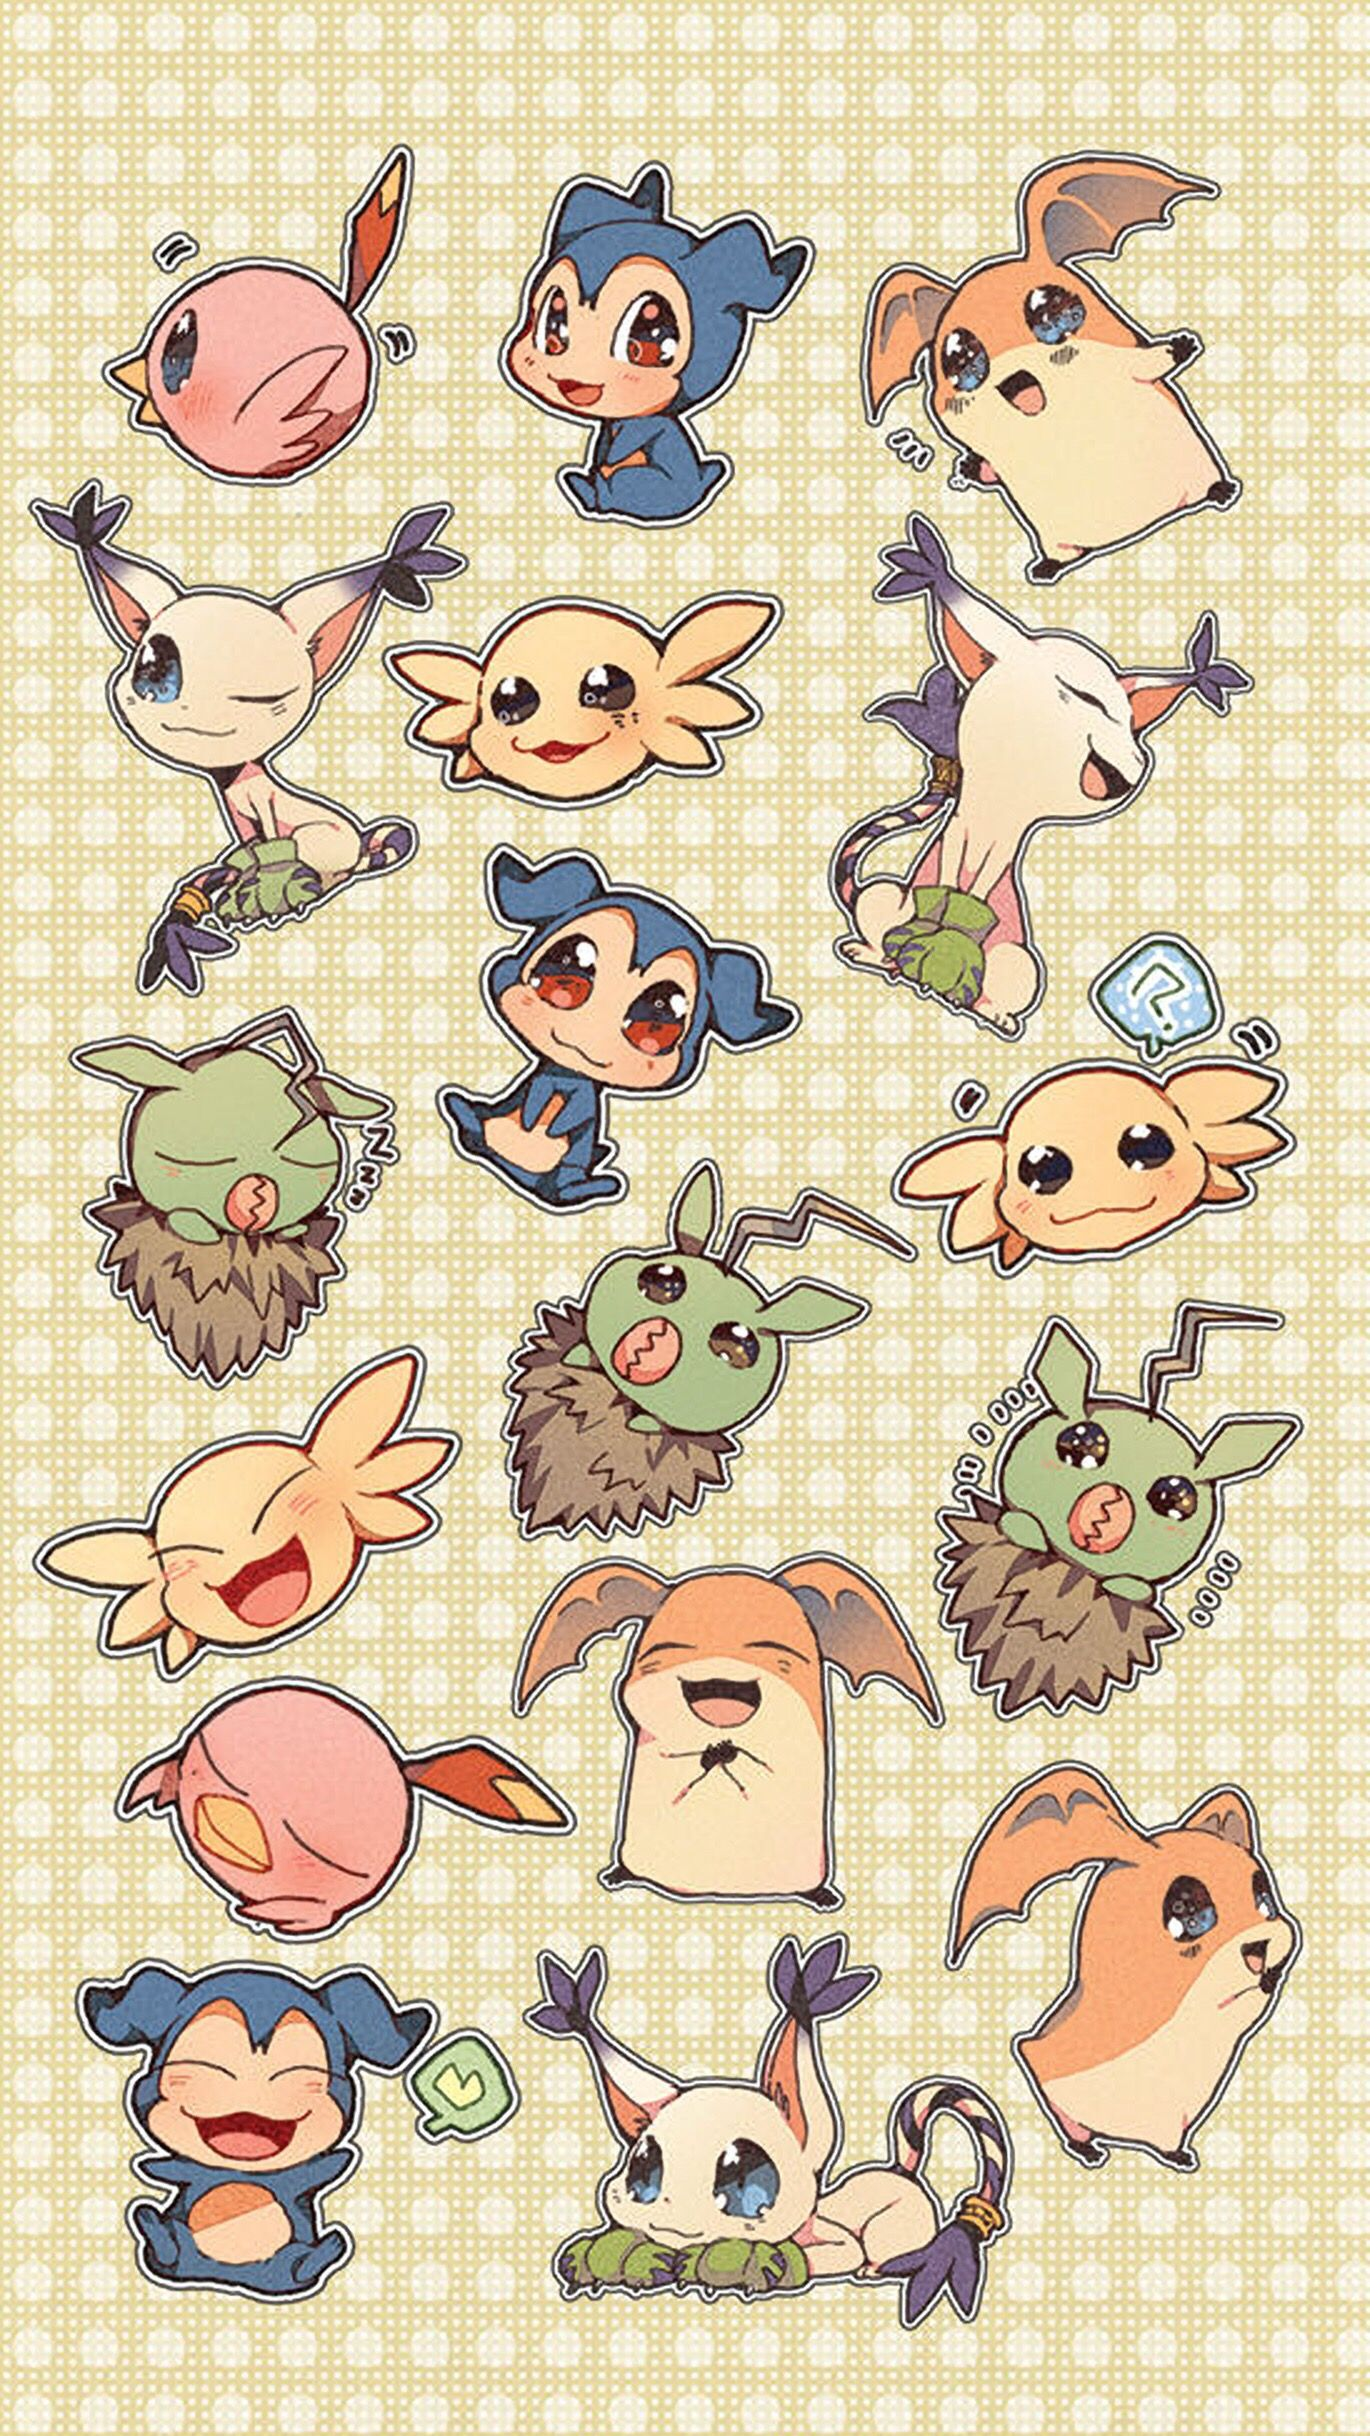 Pokemon wallpaper for iPhone and Android.